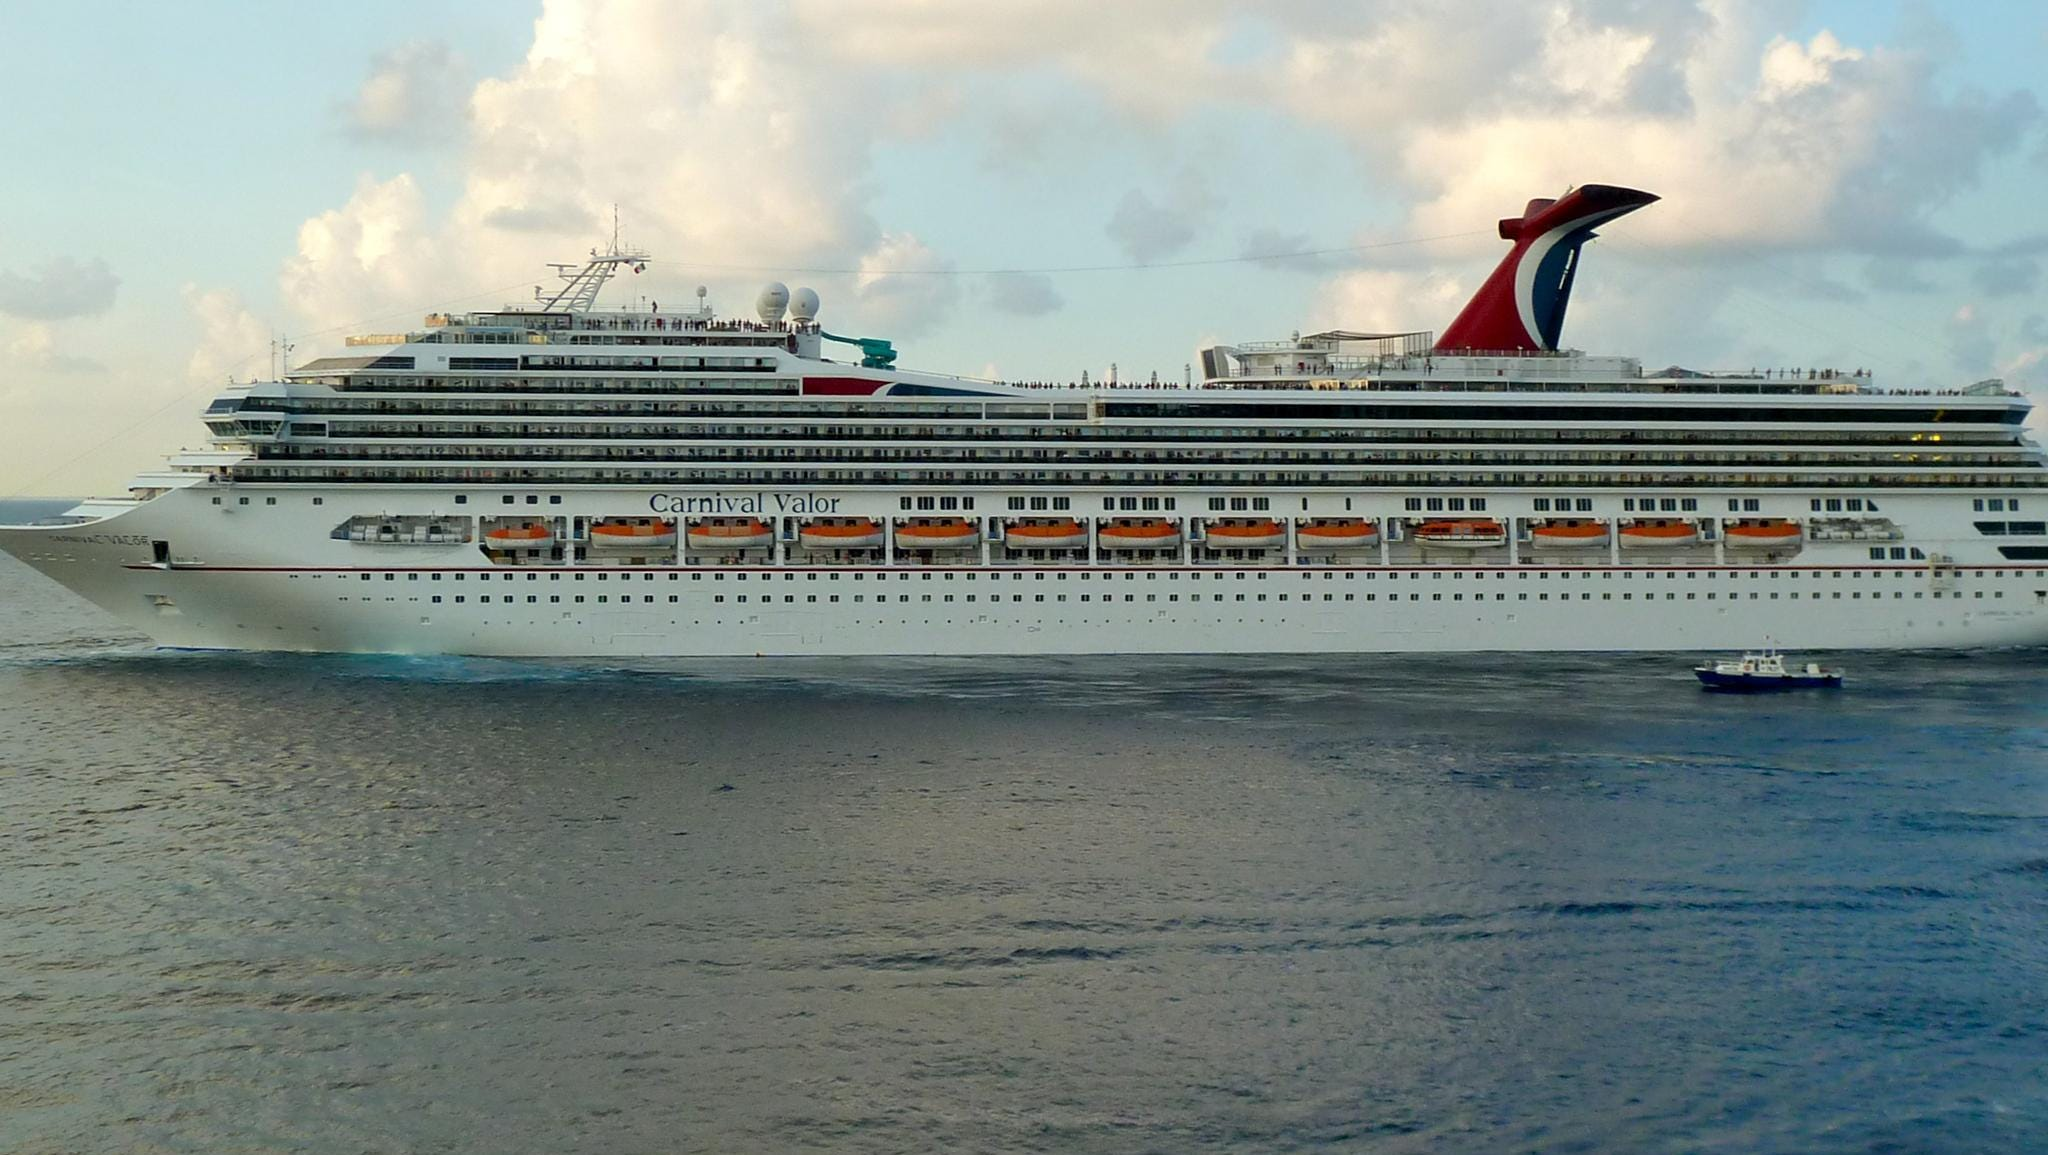 Carnival Valor is 952 feet long, has a beam of 116 feet and a draft of 27 feet. The vessel is manned by an international crew and staff numbering 1,180.